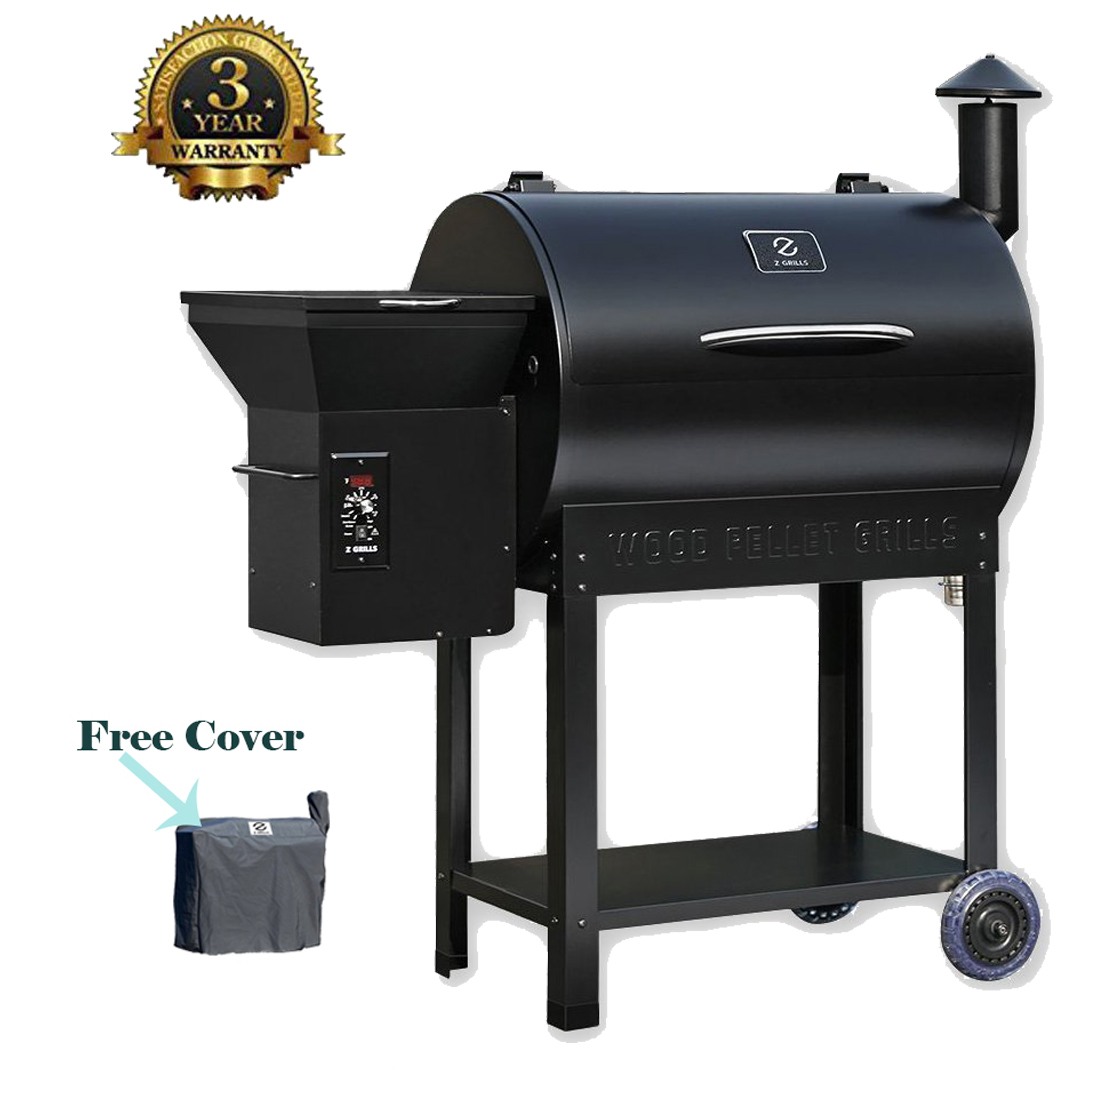 Z Grills Wood Pellet Grill & Smoker with Patio Cover, 7 in 1- Grill,700 Cooking Area, Roast, Sear, Bake,Smoke, Braise and BBQ with Electric Digital Controls for Outdoor